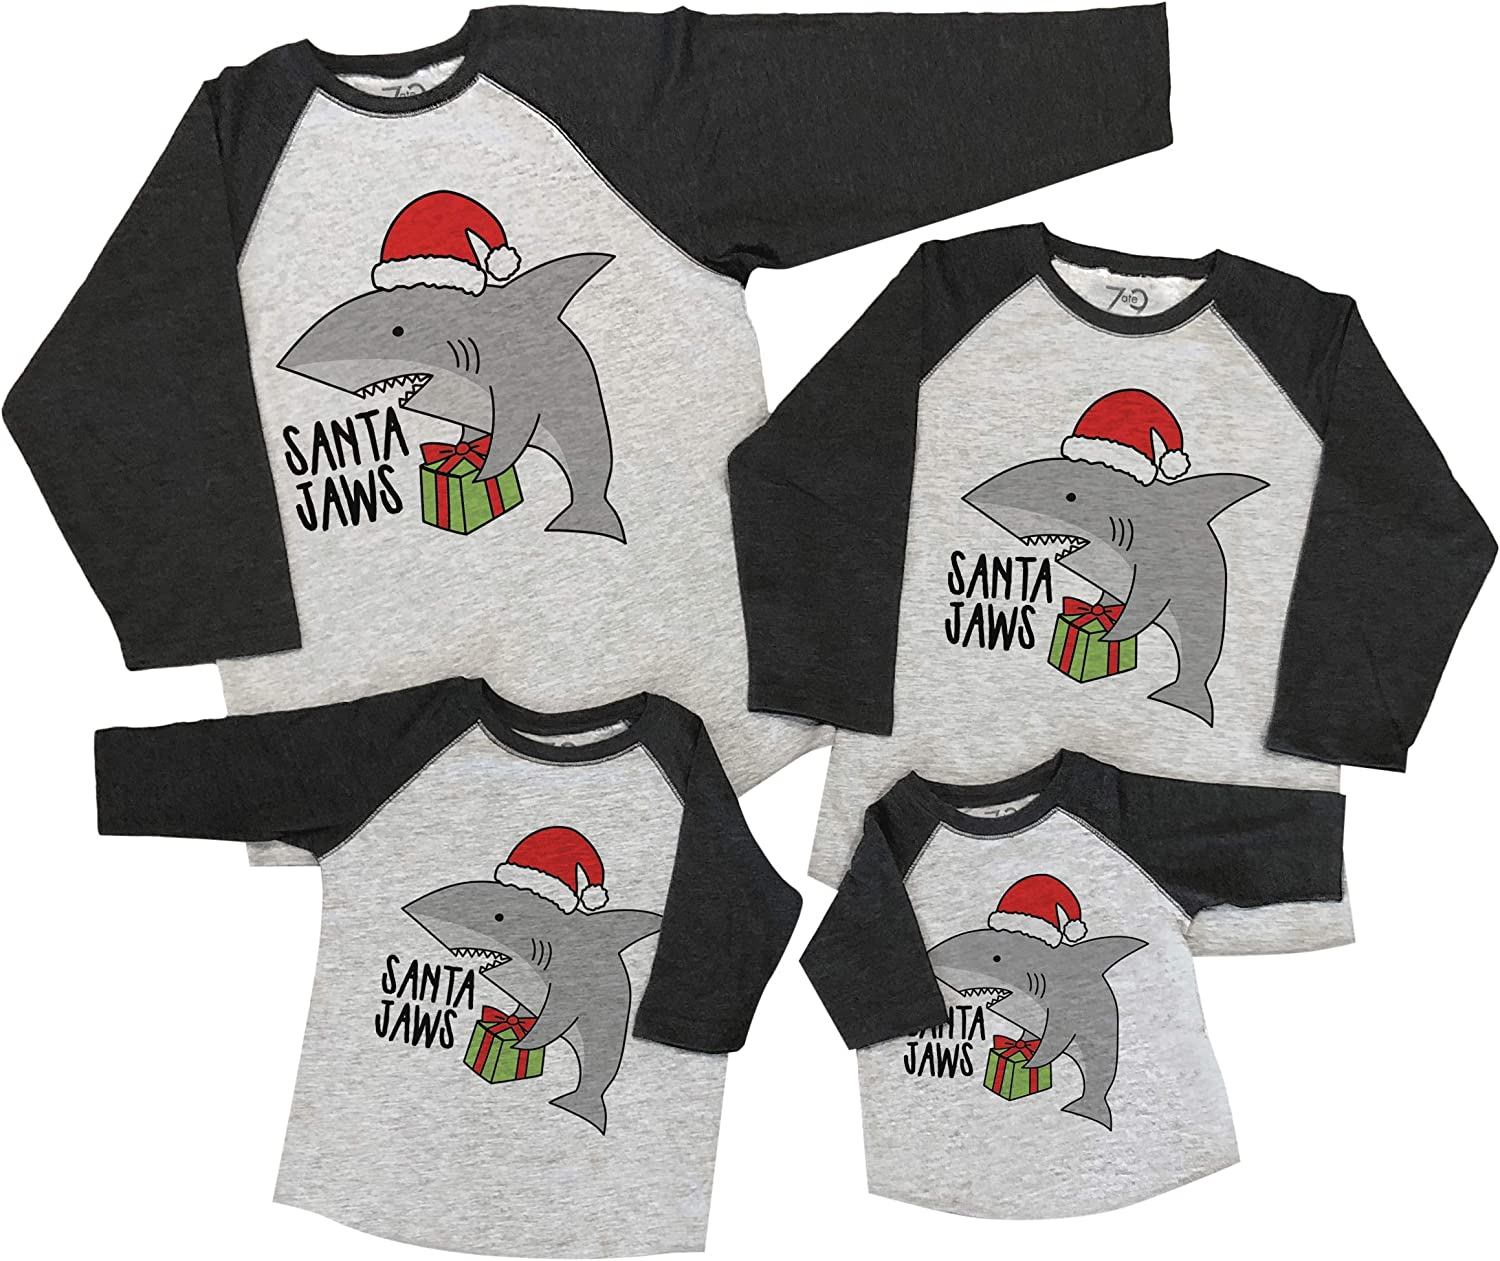 7 ate 9 Apparel Matching Family Christmas Shirts - Santa Shark Grey Shirt